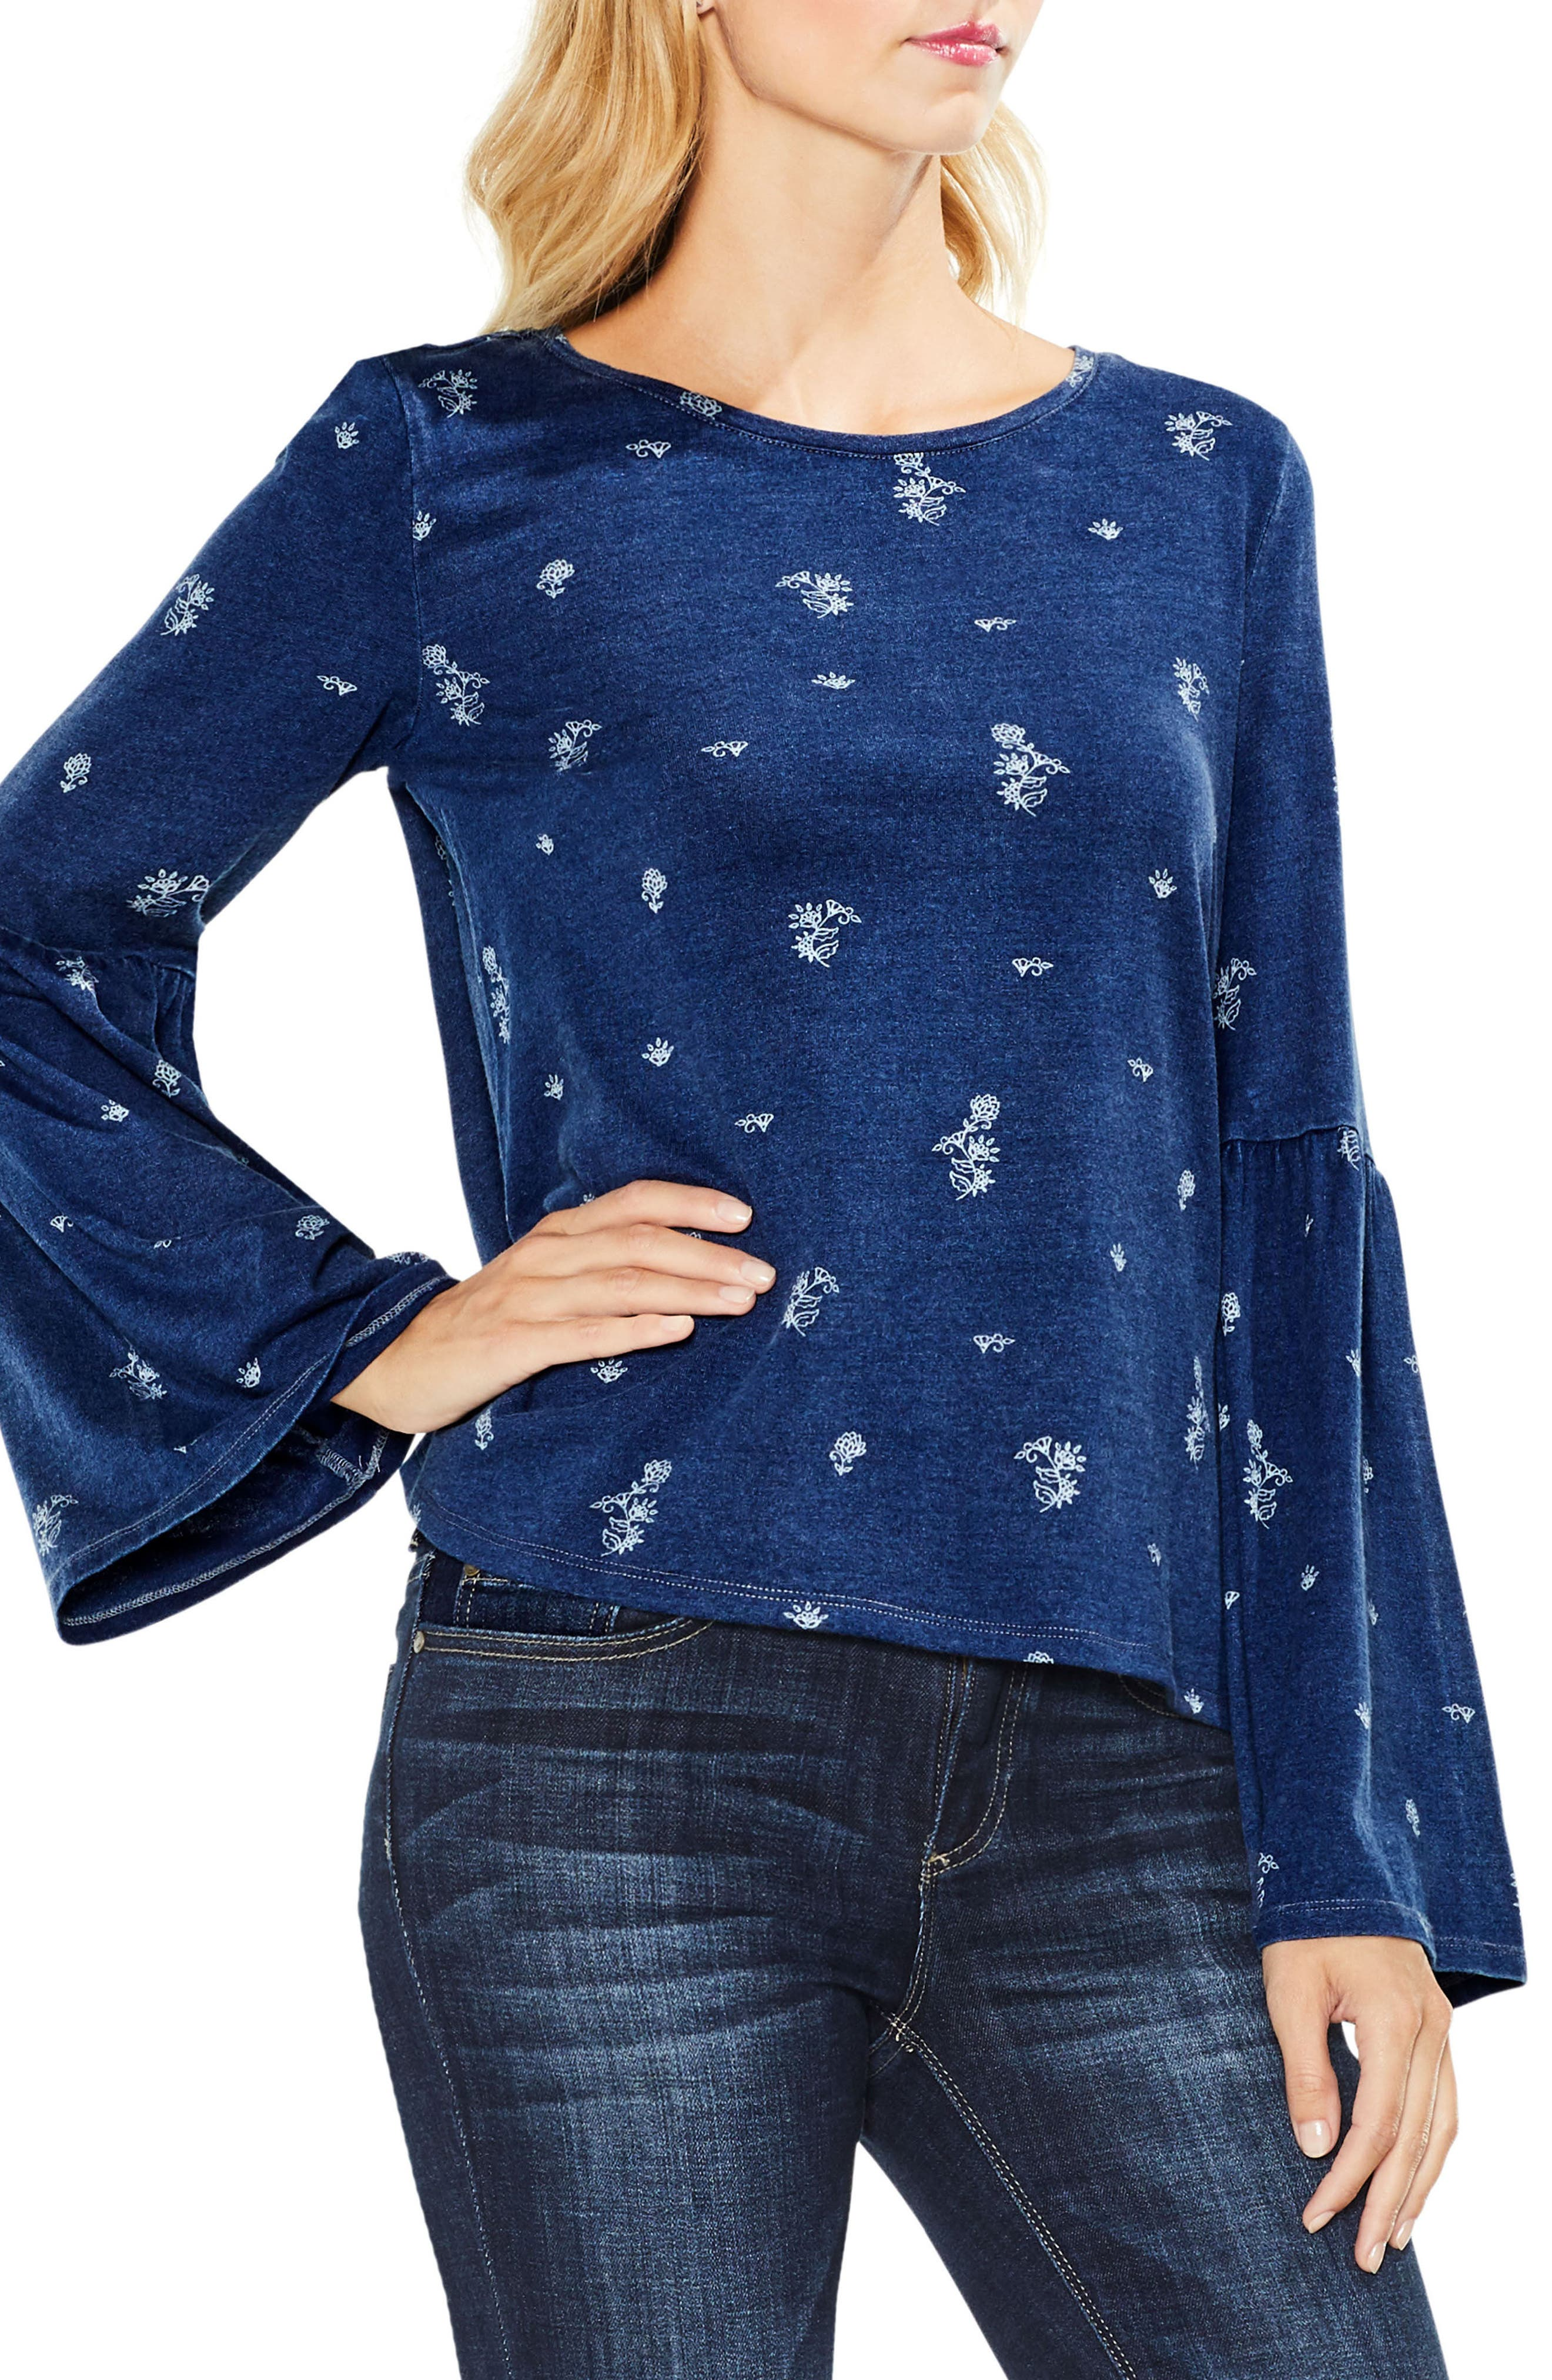 Main Image - Two by Vince Camuto Delicate Ditsy Bell Sleeve Top